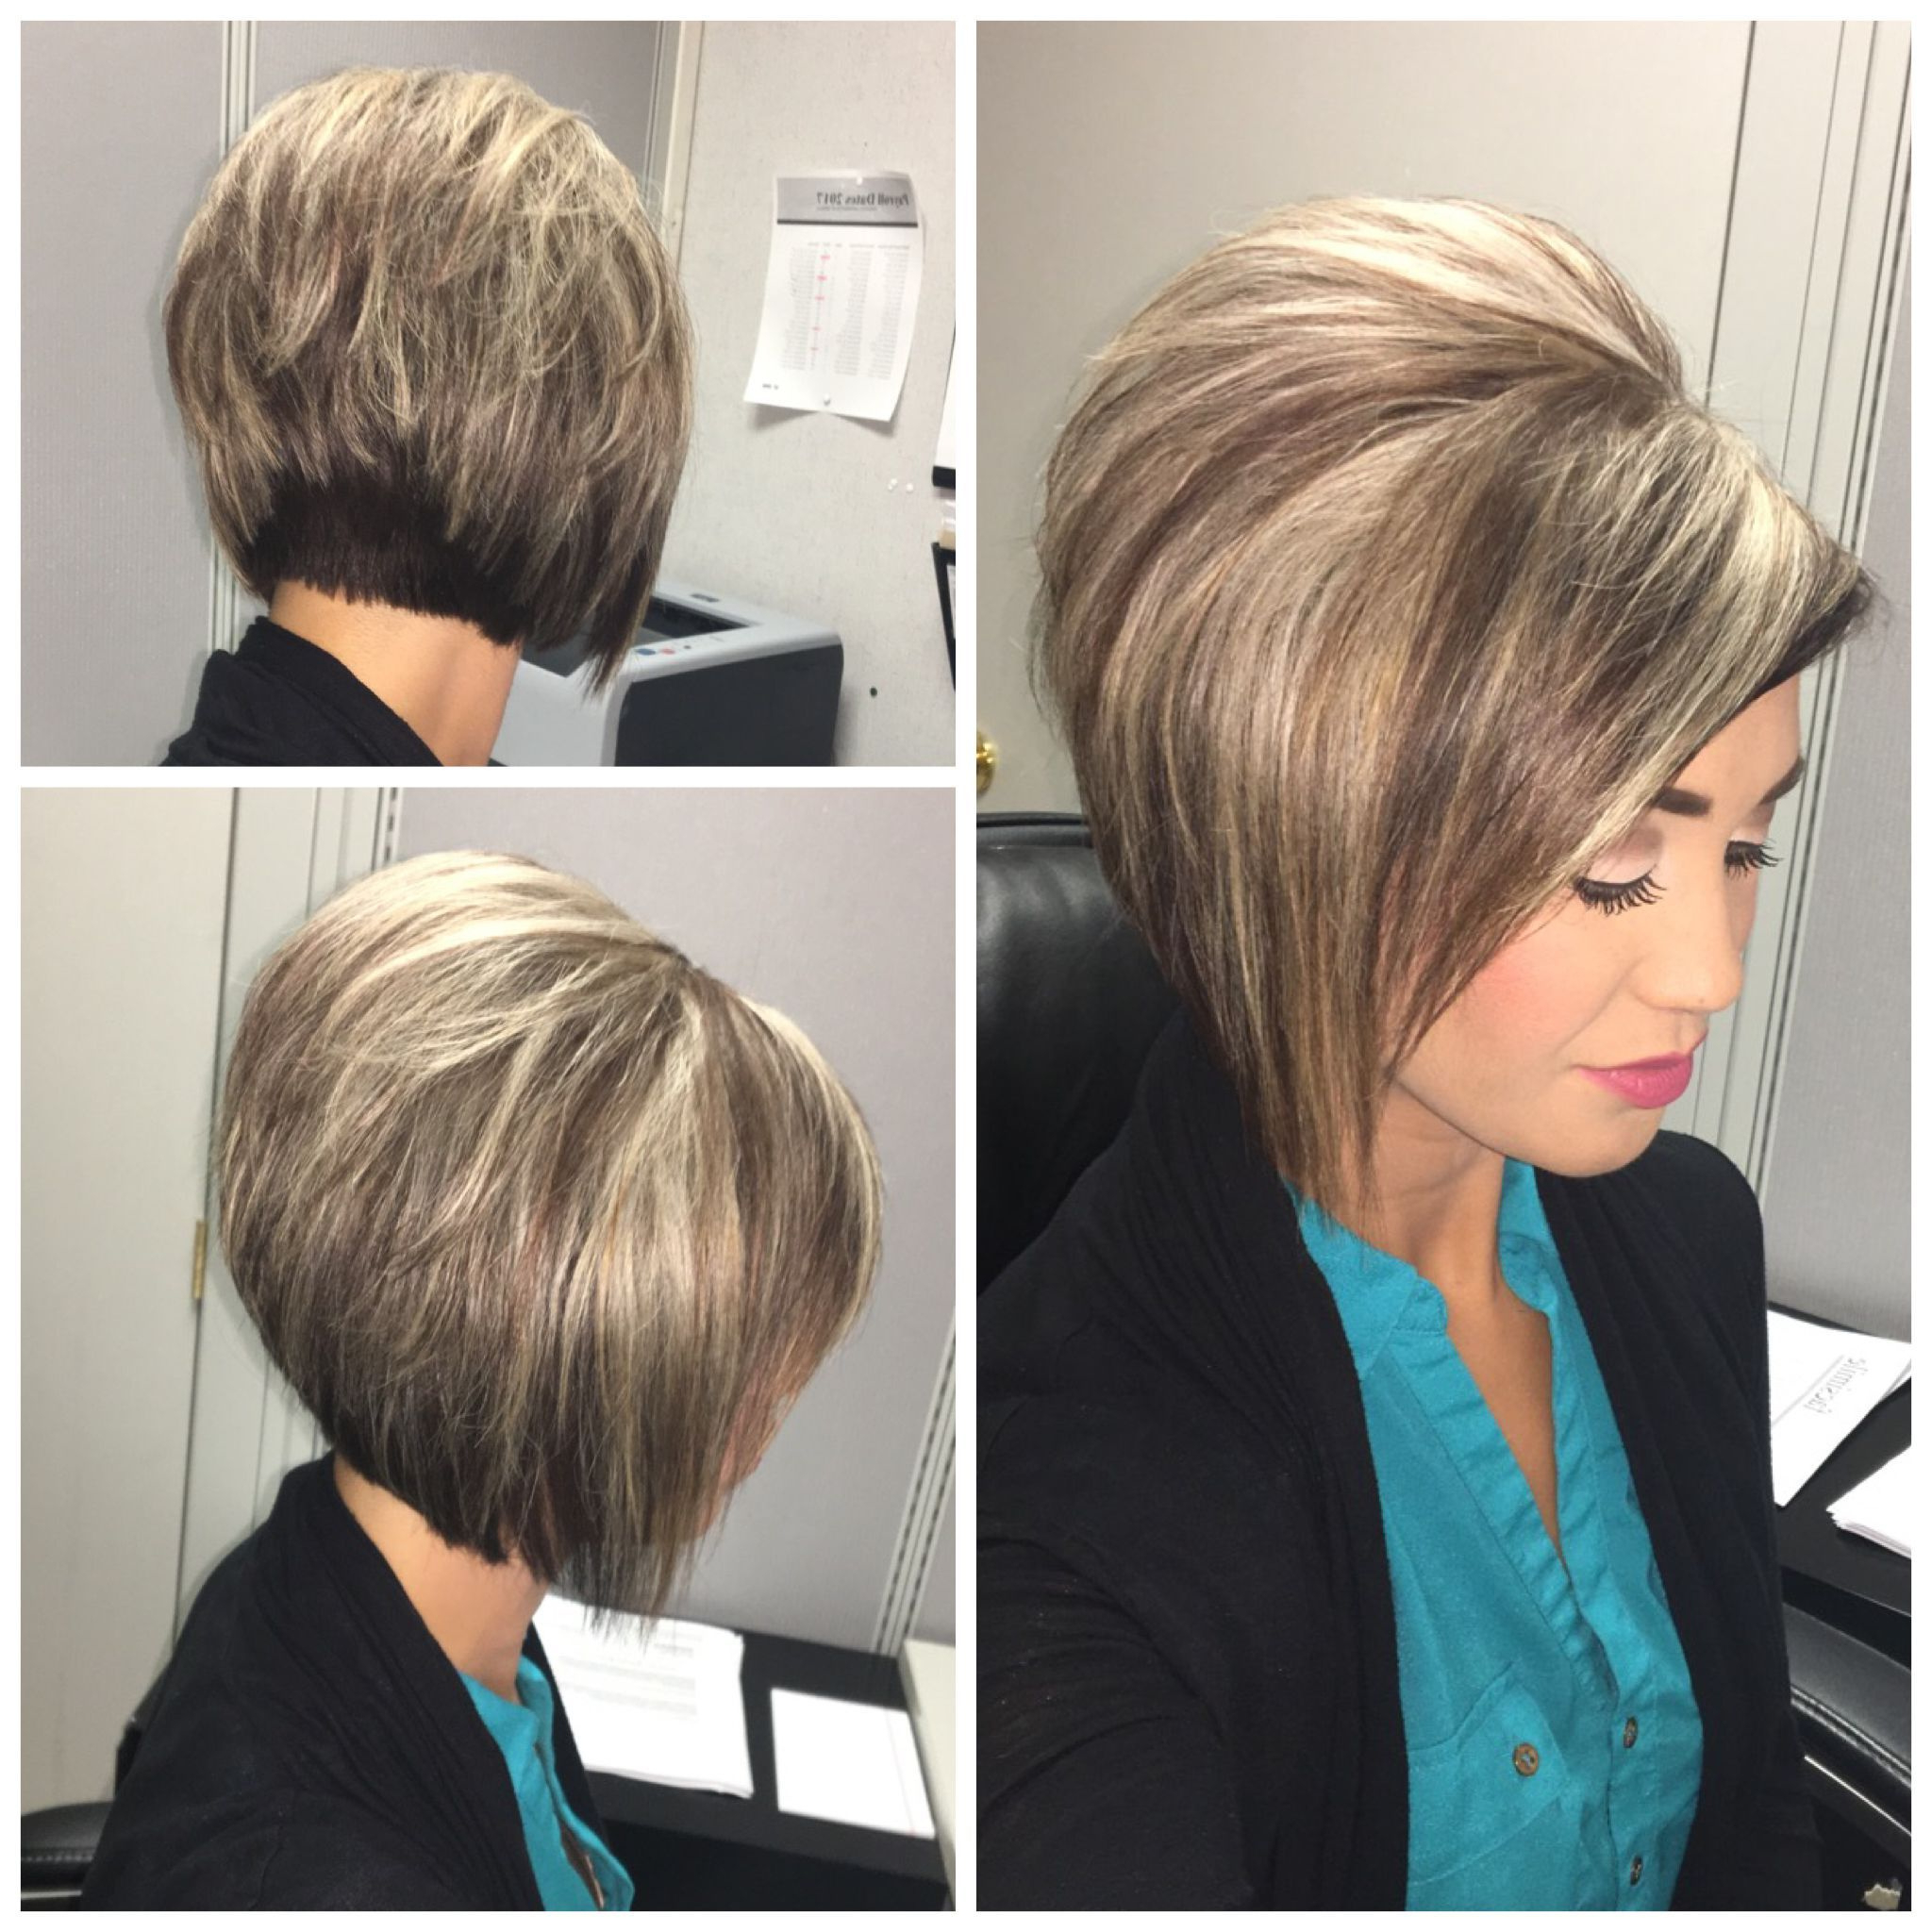 Hairstyles : Stacked Bob With Bangs Thrilling Stacked Bob Regarding Blonde Bob Haircuts With Side Bangs (View 13 of 20)